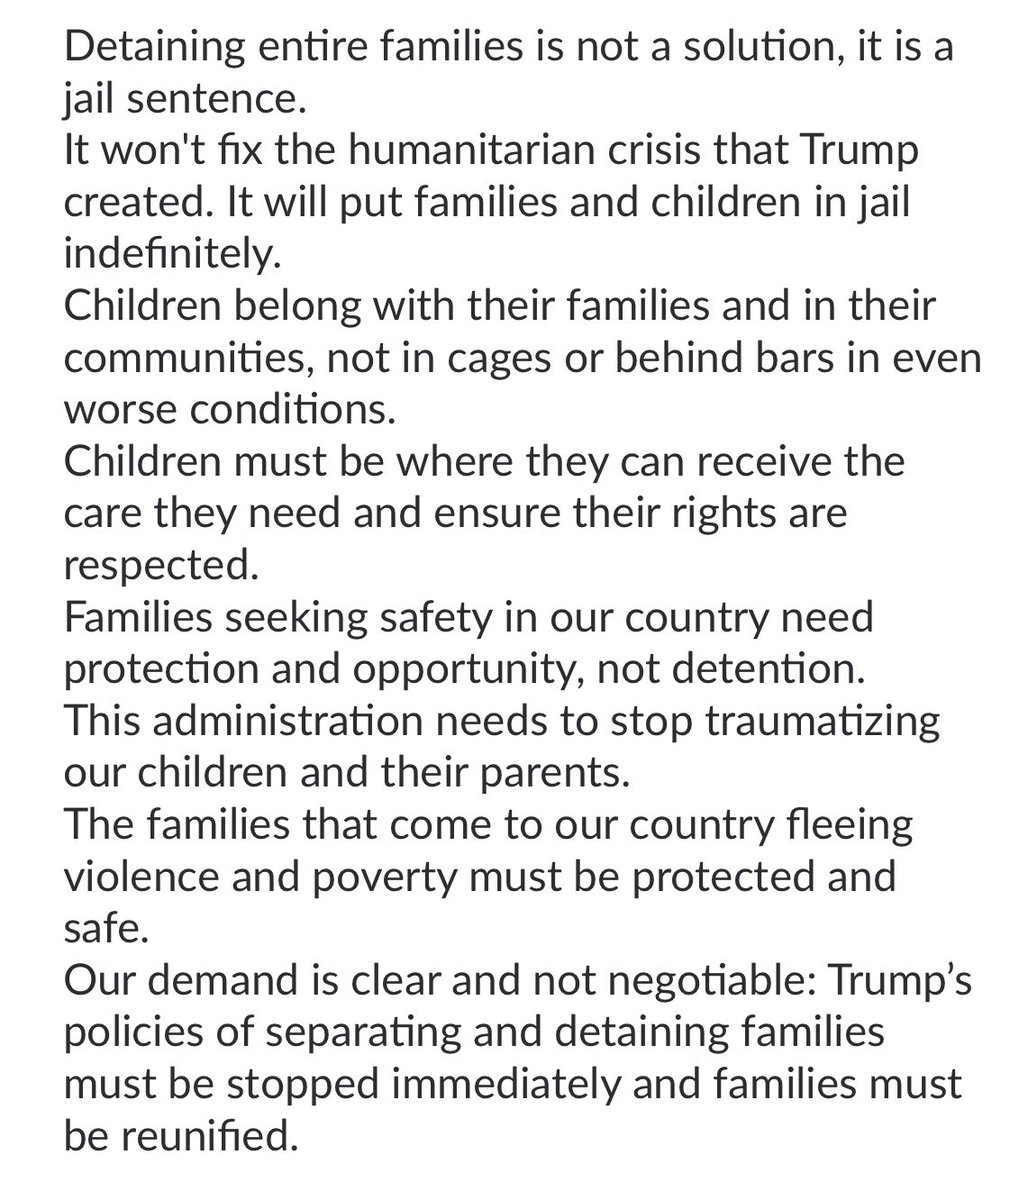 Our demands have not changed, Executive Order or not.   #FamiliesBelongTogether https://t.co/kJPqzBHjdA